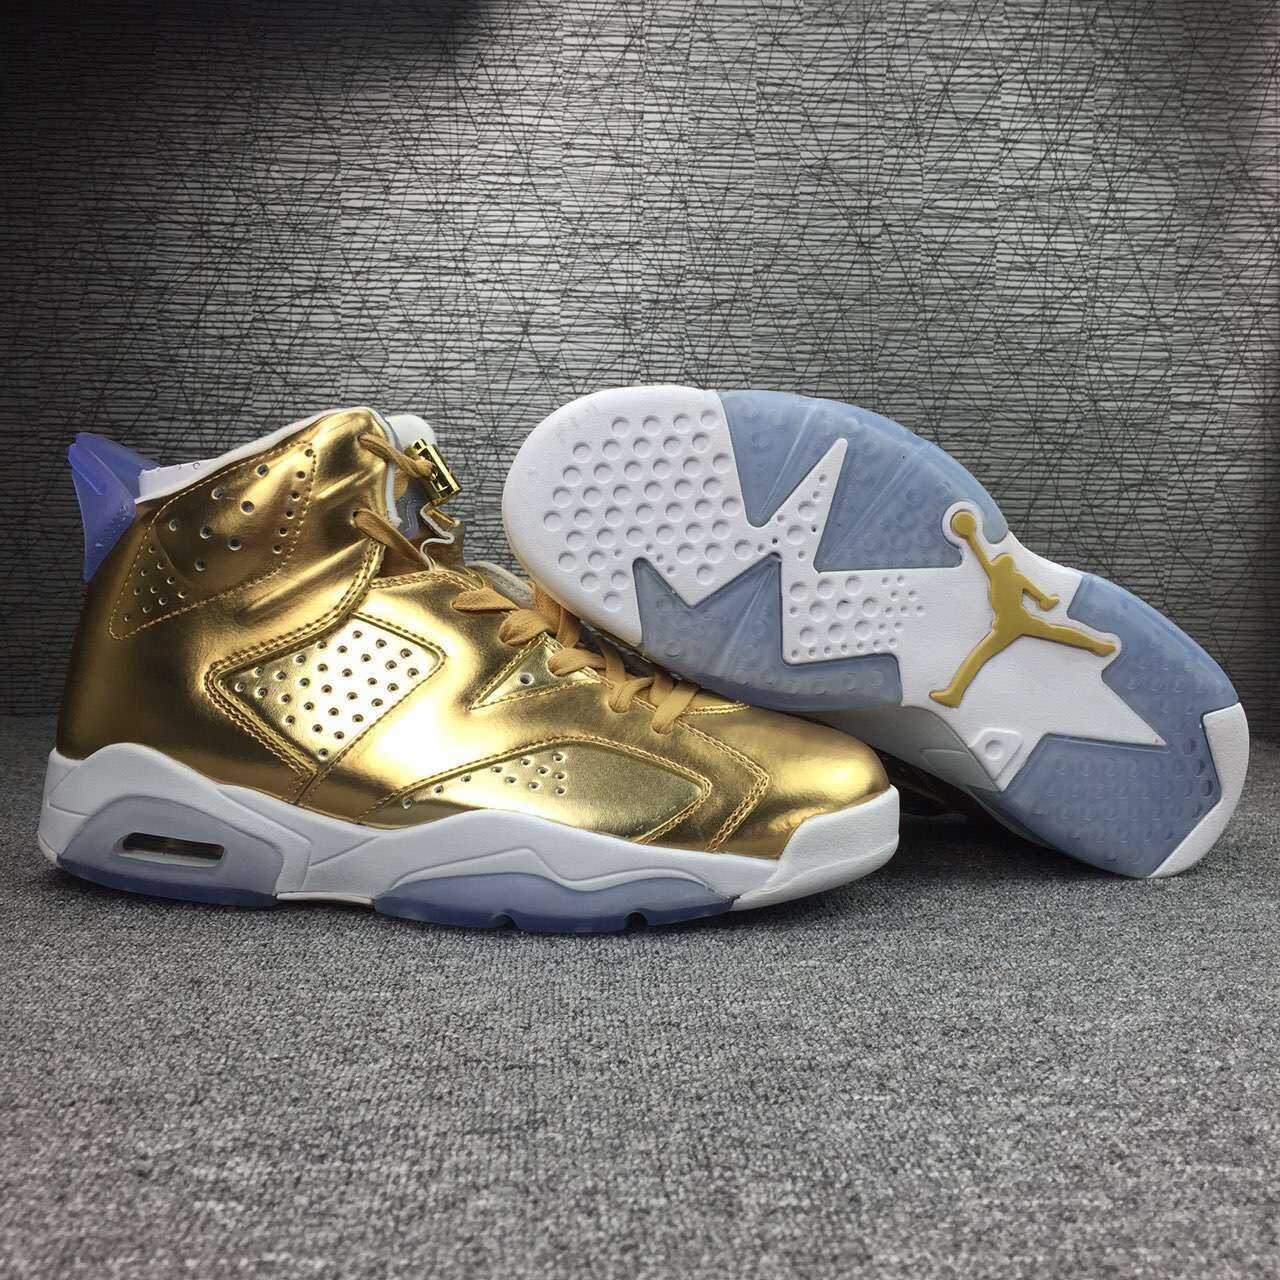 Sell men air jordan 6 retro cheap wholesale men basketball shoe air jordan 6 pinnacle aaaa 285 - Photos of all jordan shoes ...